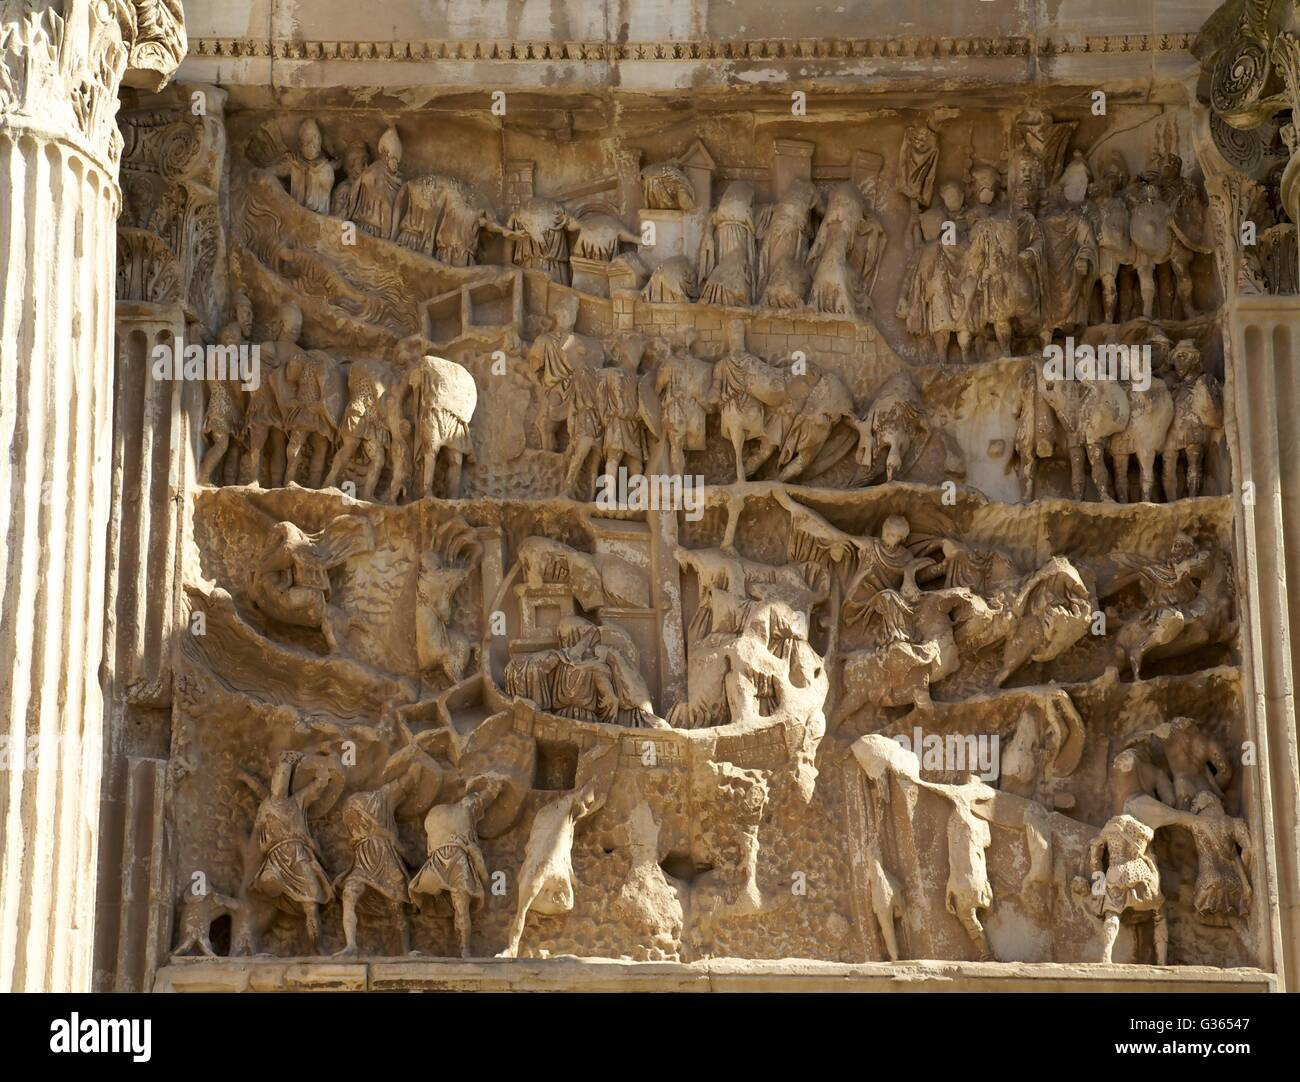 Relief carvings, Triumphal Arch of Septimius Severus, Roman Forum, Rome, Italy, Europe - Stock Image